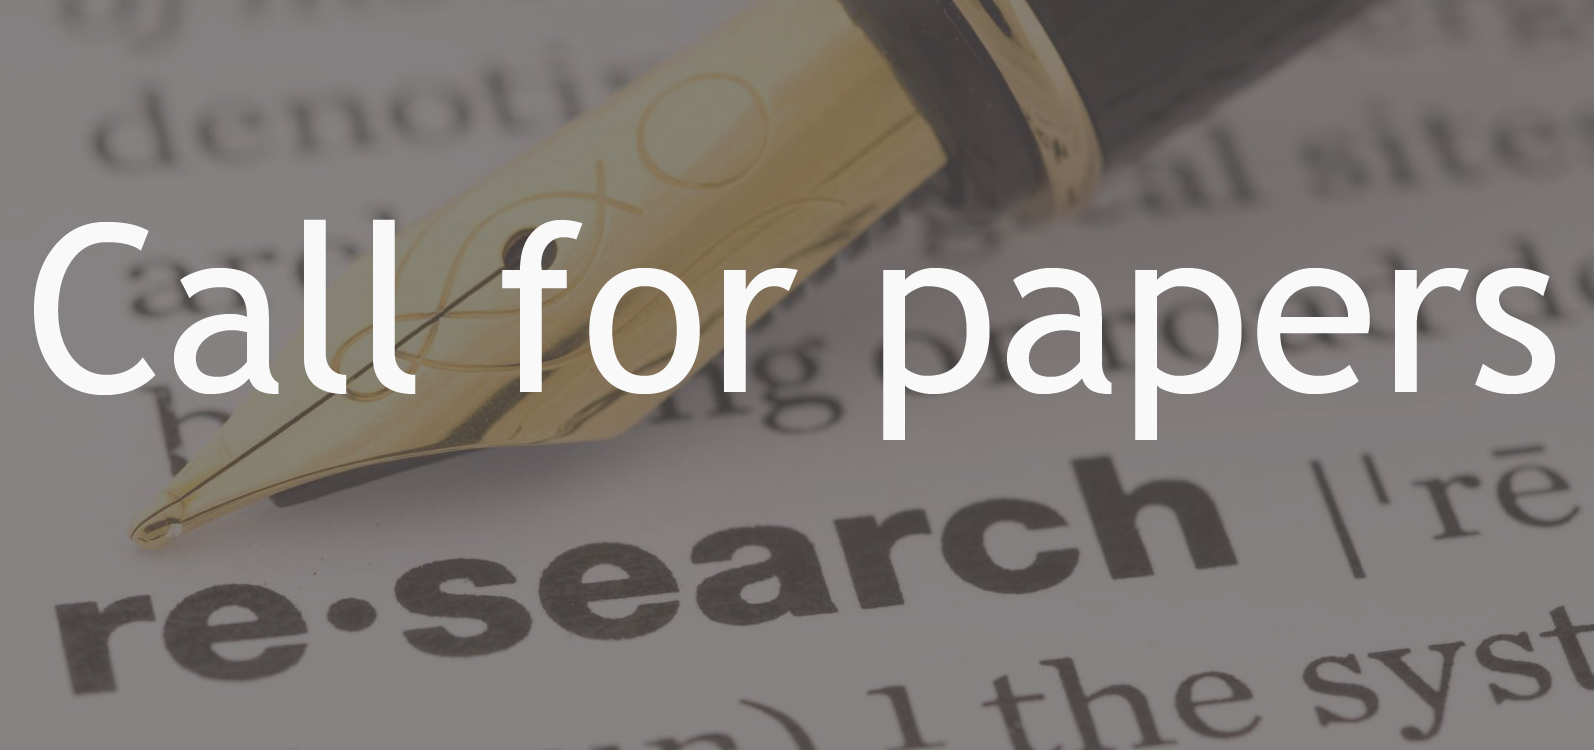 copy of research paper Definition: a literary research paper is a compilation and interpretation of factual materials and 10 proofread the final copy research paper guidelines.